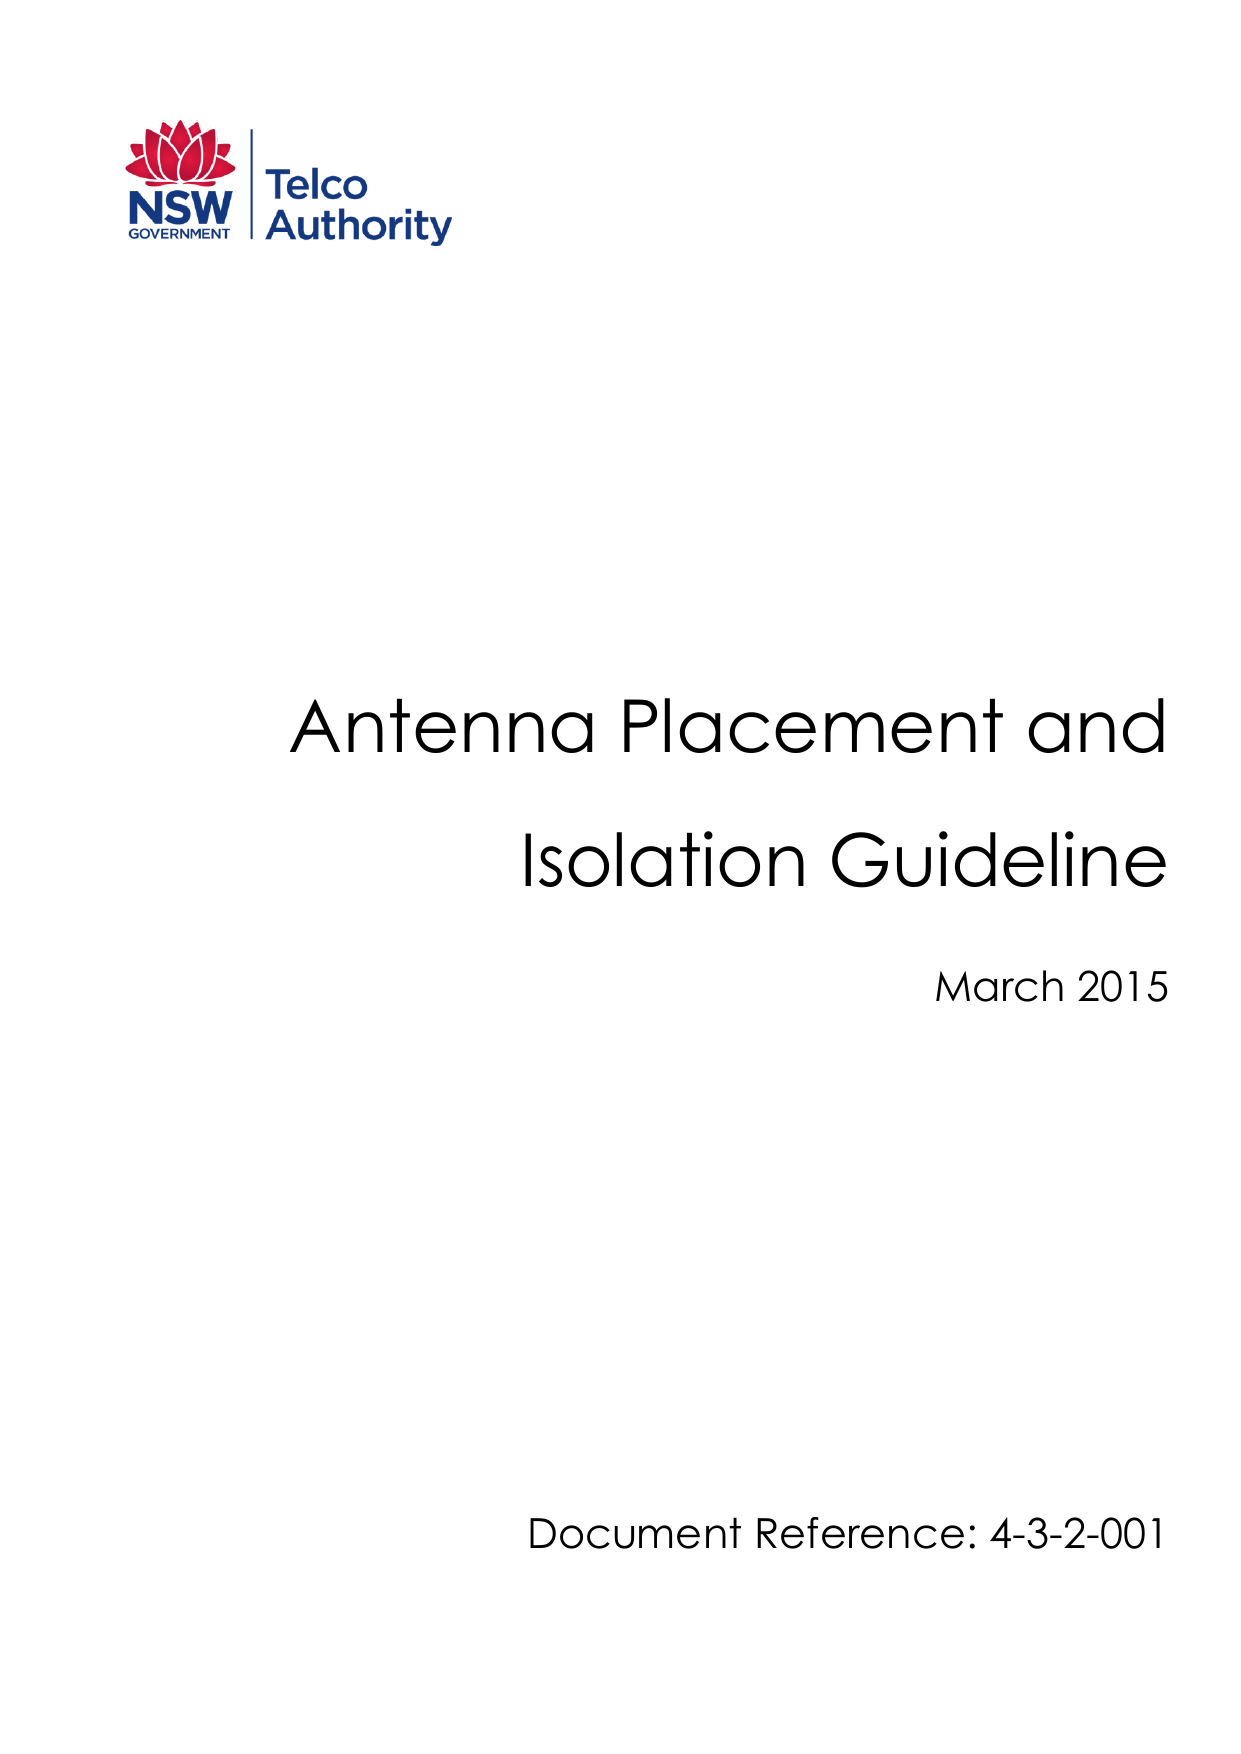 Antenna Placement and Isolation Guideline